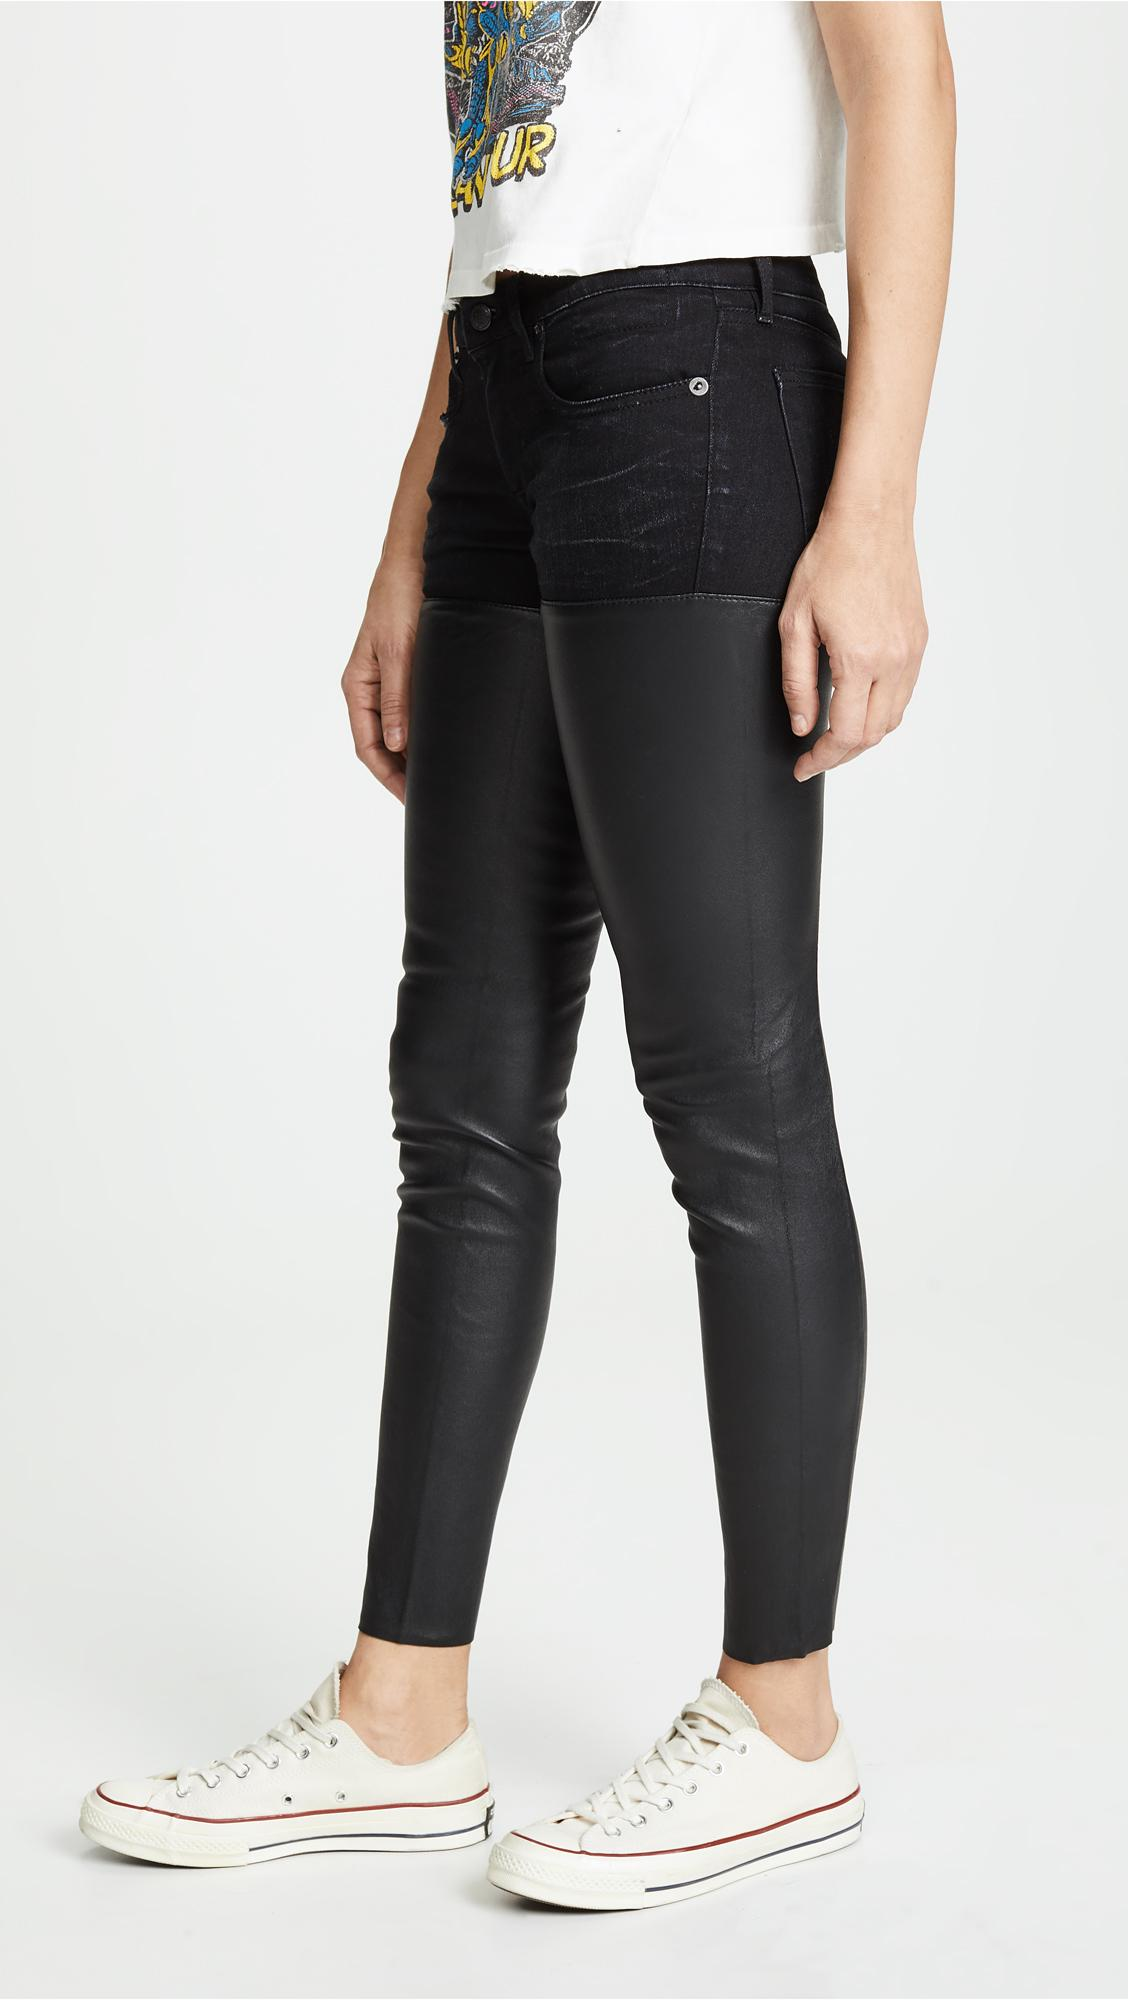 R13 Leather Chaps Jeans in Black